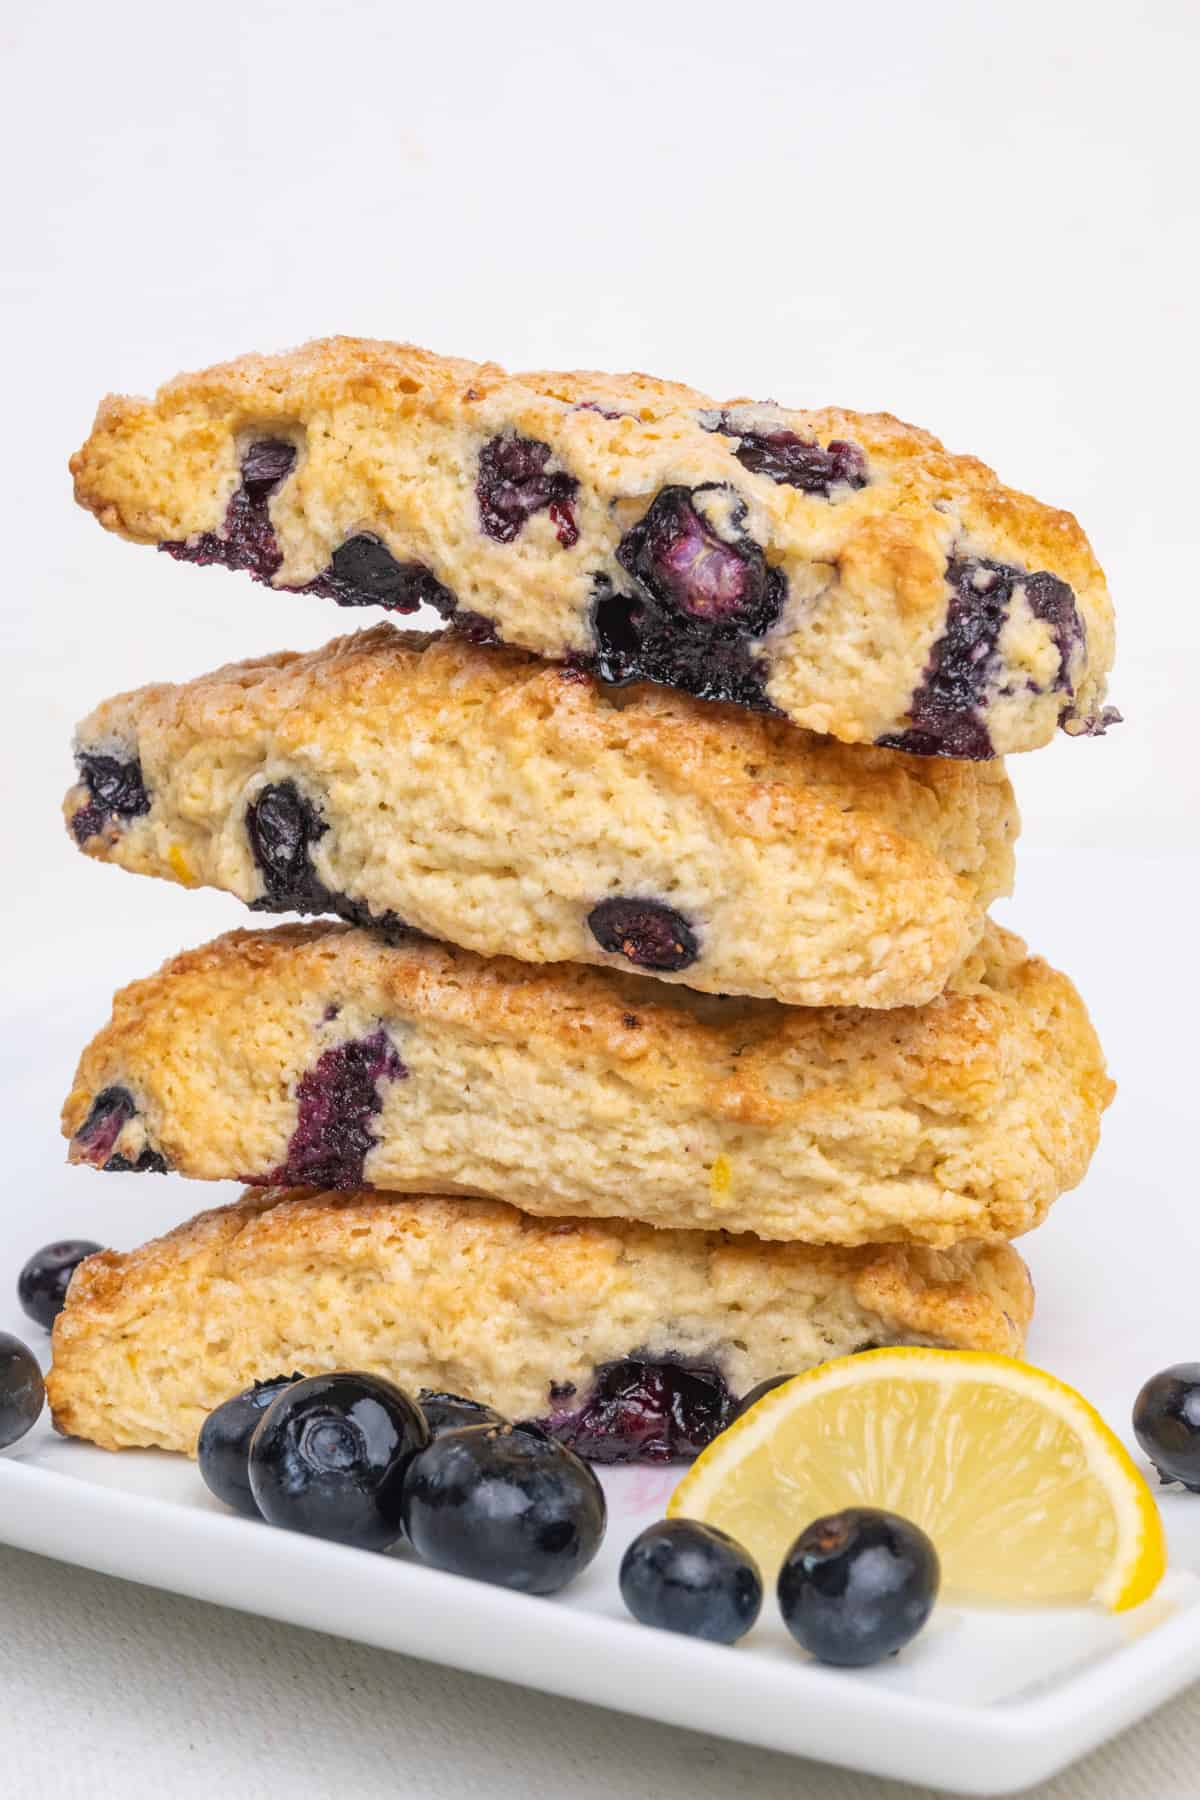 A stack of four vegan blueberry scones on a white plate.